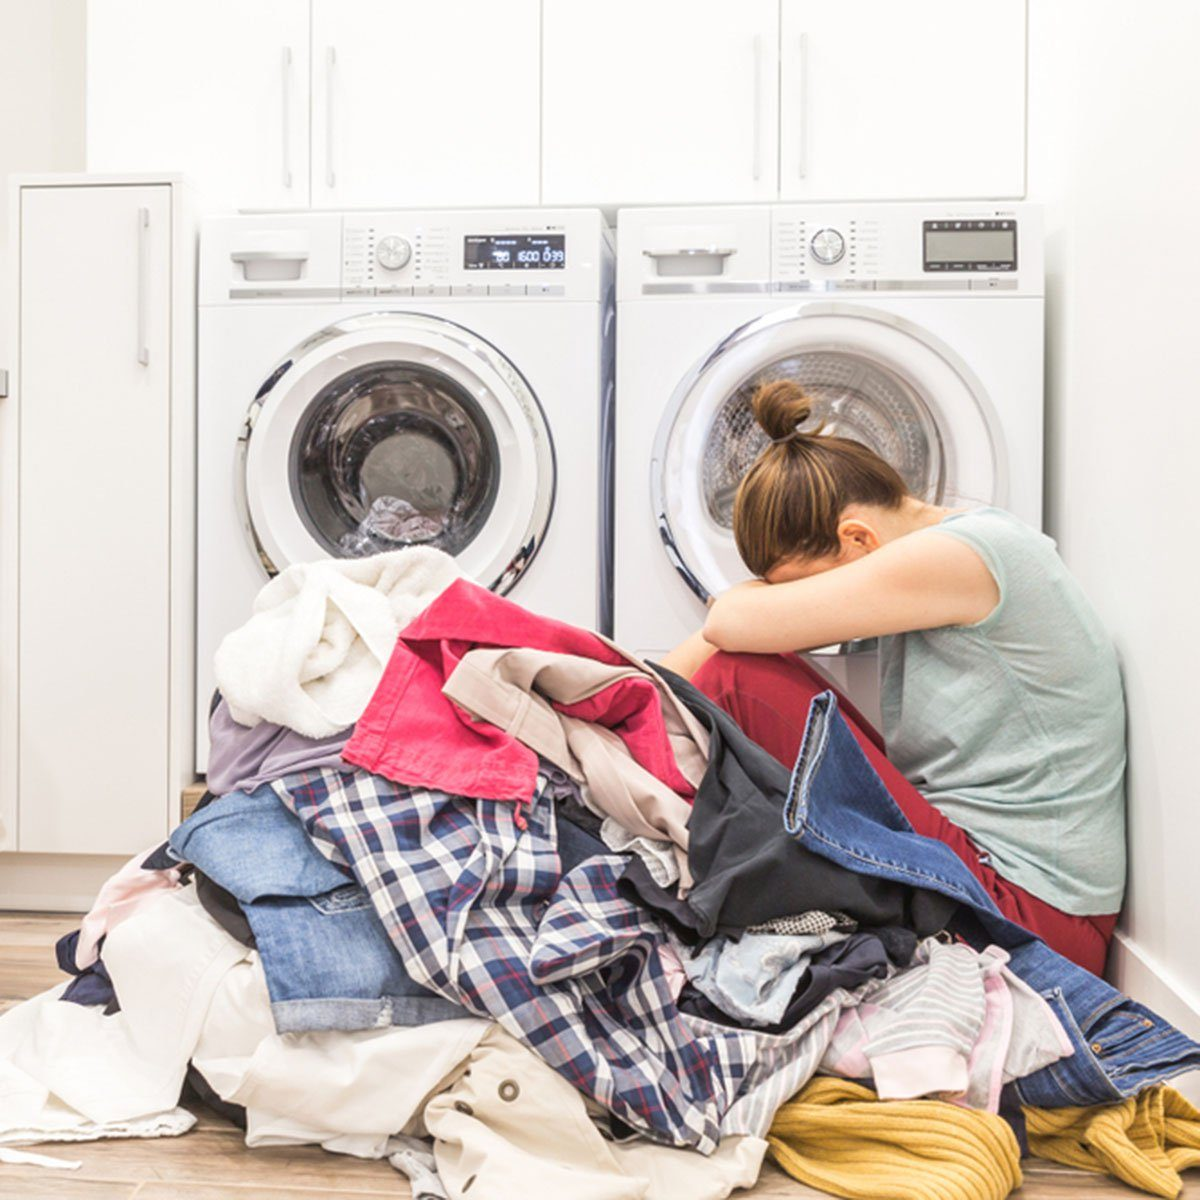 Sad woman sitting in laudry room with a pile of dirty clothes; Shutterstock ID 775801702; Job (TFH, TOH, RD, BNB, CWM, CM): Taste of Home